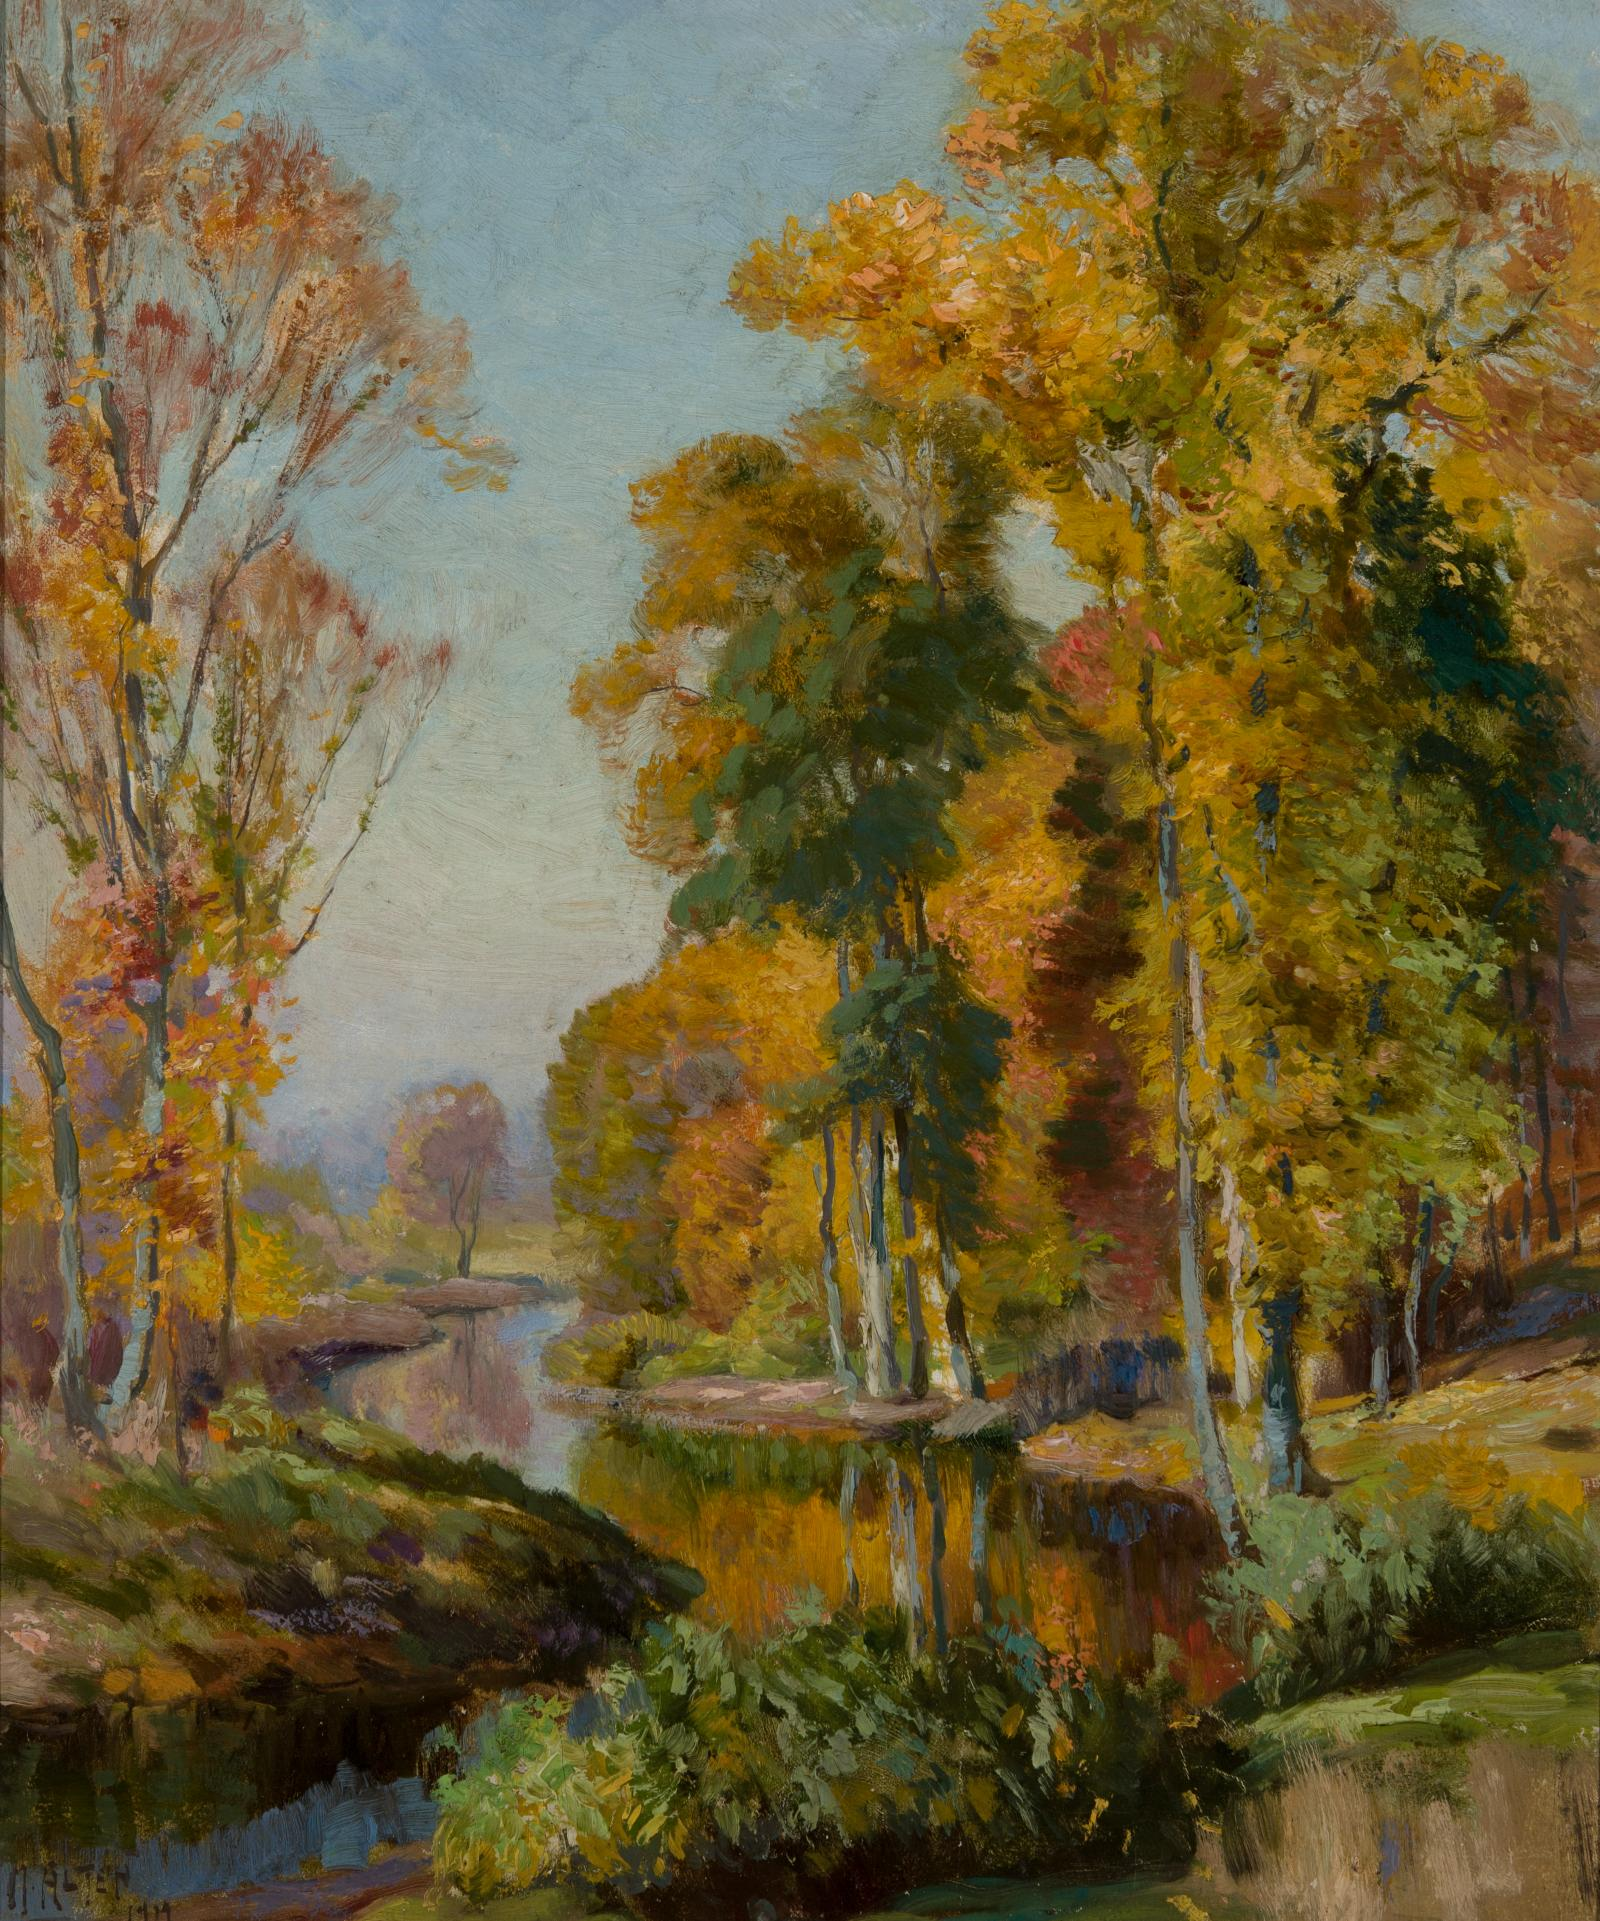 Yellow, orange, and green colored trees along the banks of a stream.